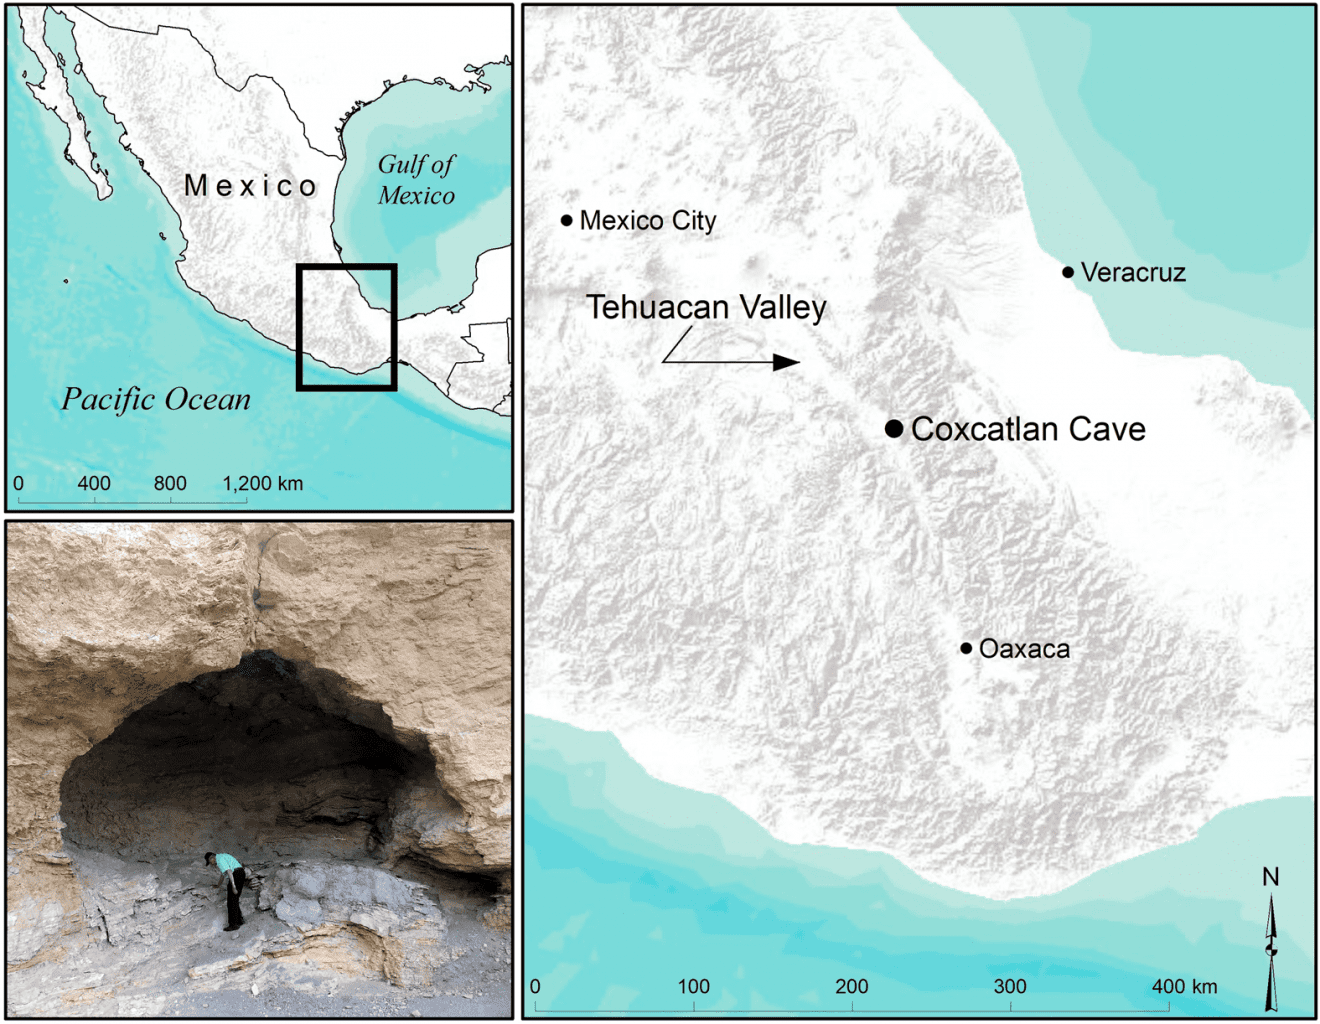 Map of the location of Coxcatlan Cave in the Tehuacan Valley, as well as an image of the entrance. Credit: Andrew Somerville